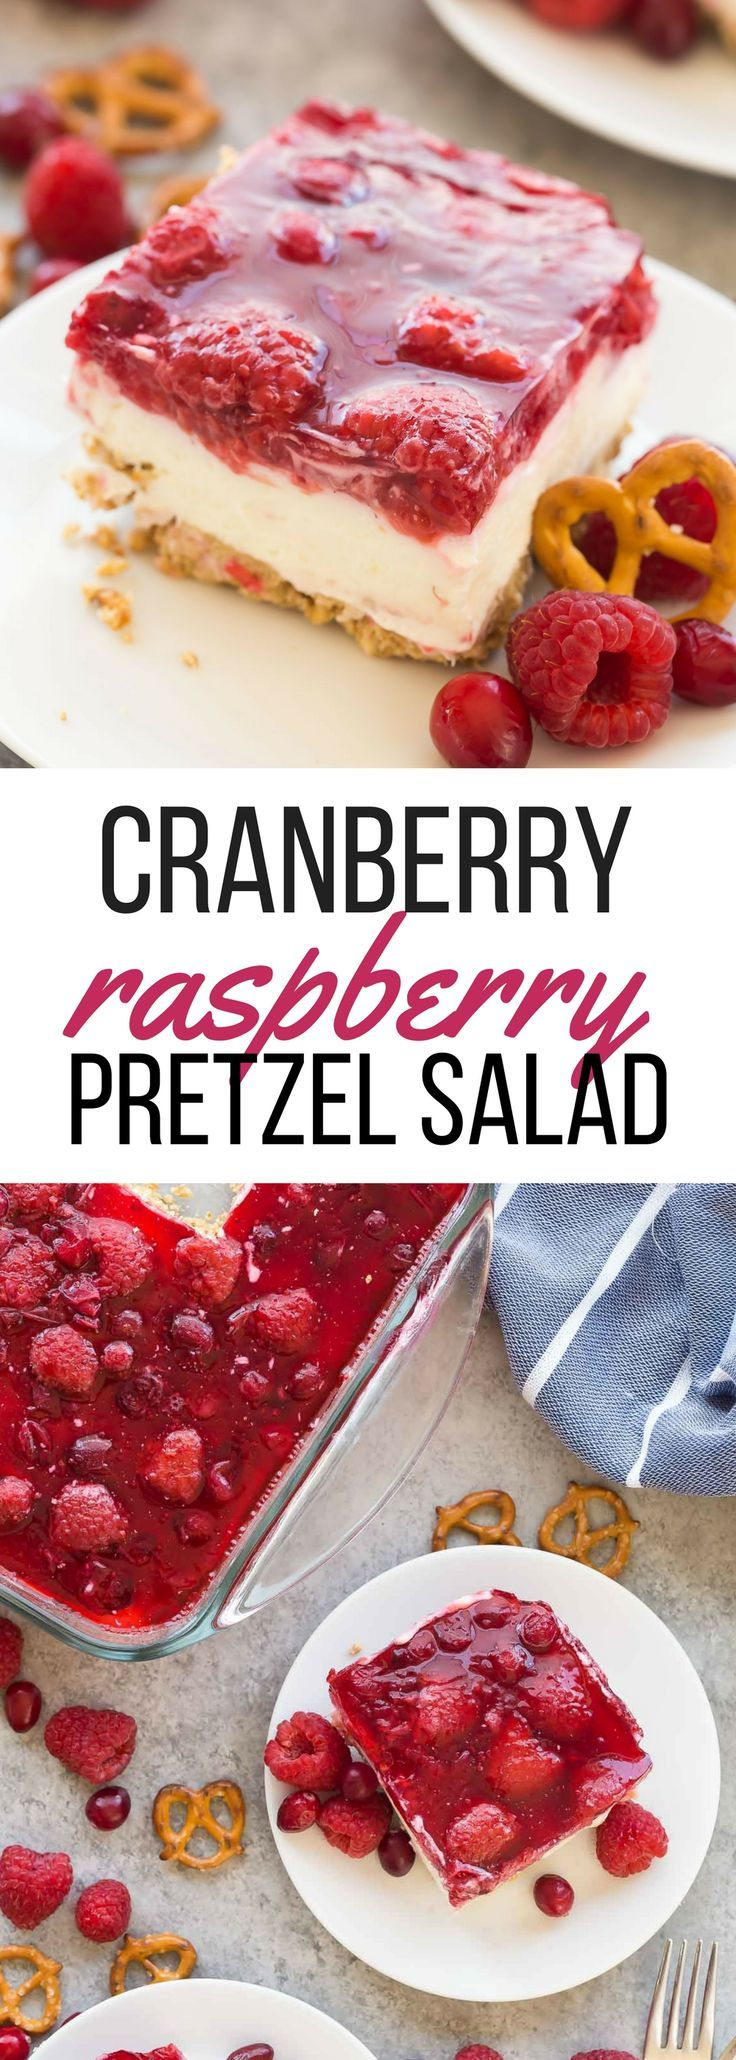 This Cranberry Raspberry Pretzel Salad Dessert is an easy holiday dessert salad that will be a big hit at Christmas or Thanksgiving! Made with cream cheese, fresh fruit and real fruit juice instead of Jello and includes a step by step recipe video. | christmas dessert recipe | holiday dessert | cranberry dessert | raspberry dessert | Thanksgiving recipe | no bake dessert #thanksgiving #christmas #pretzel